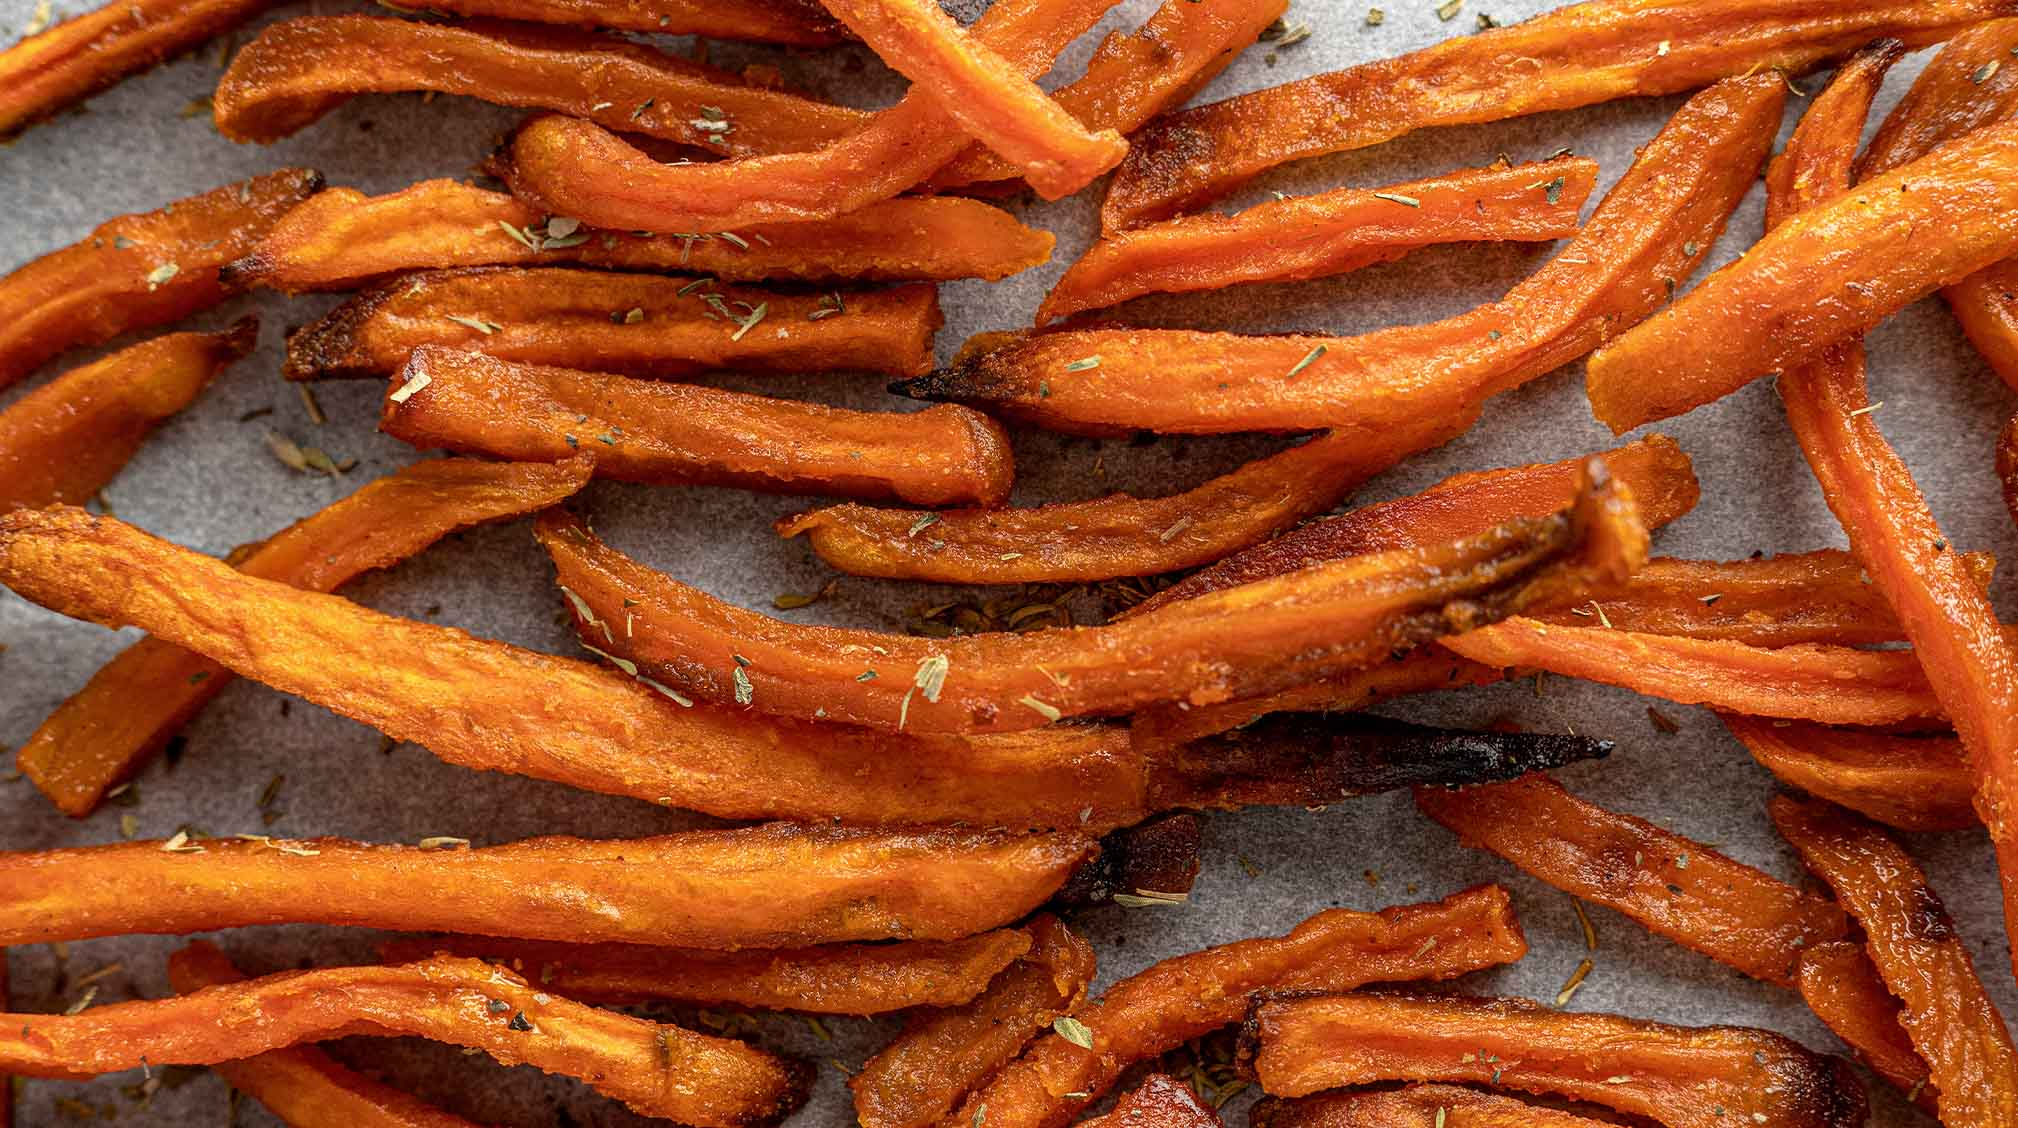 Sweet potato superfood for glowing skin